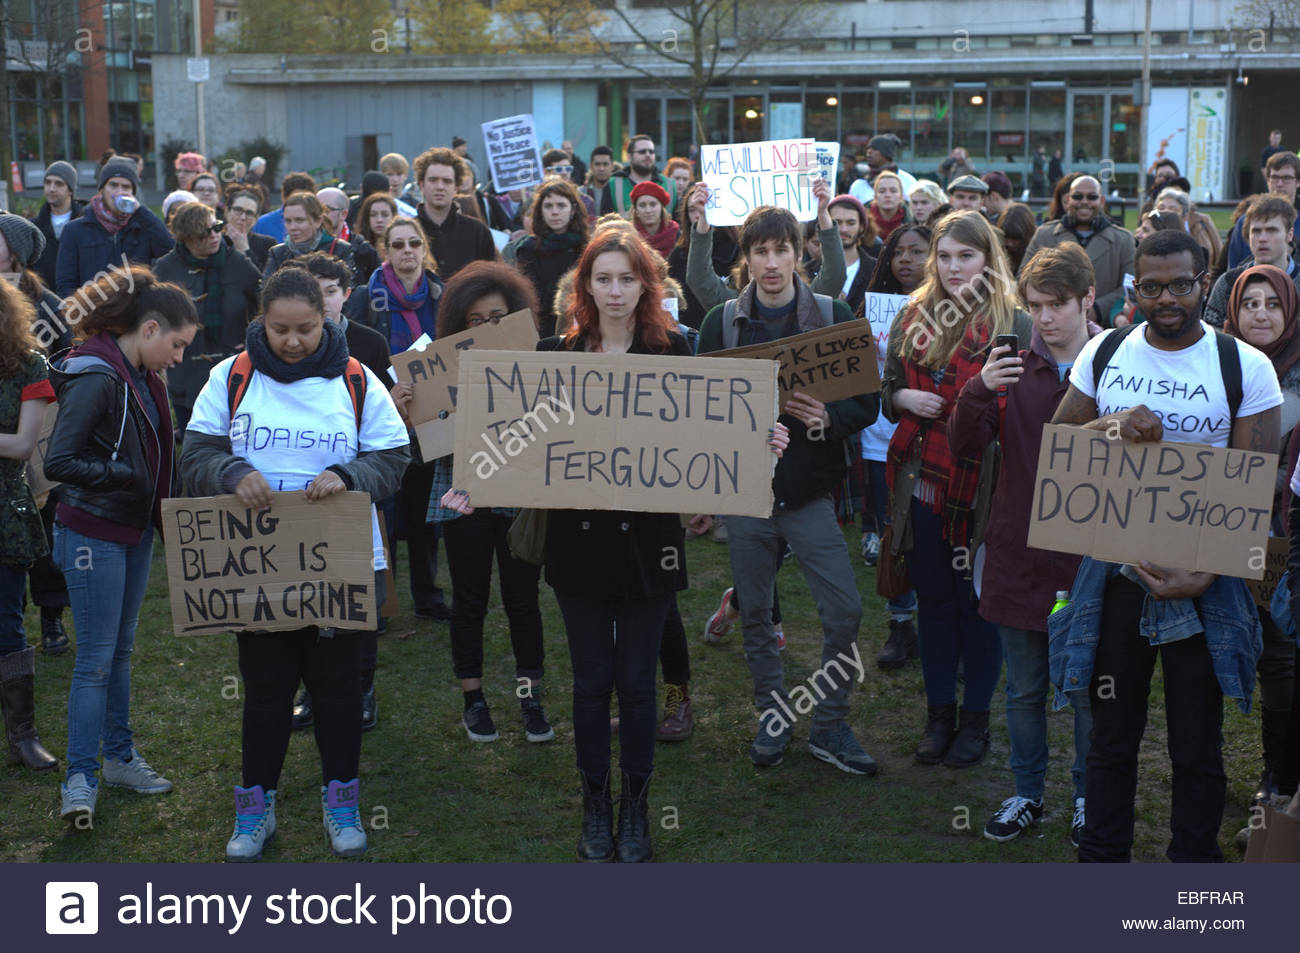 People, of various ethnicities, standing together in order to demand justice for Michael Brown. People of different - Stock Image